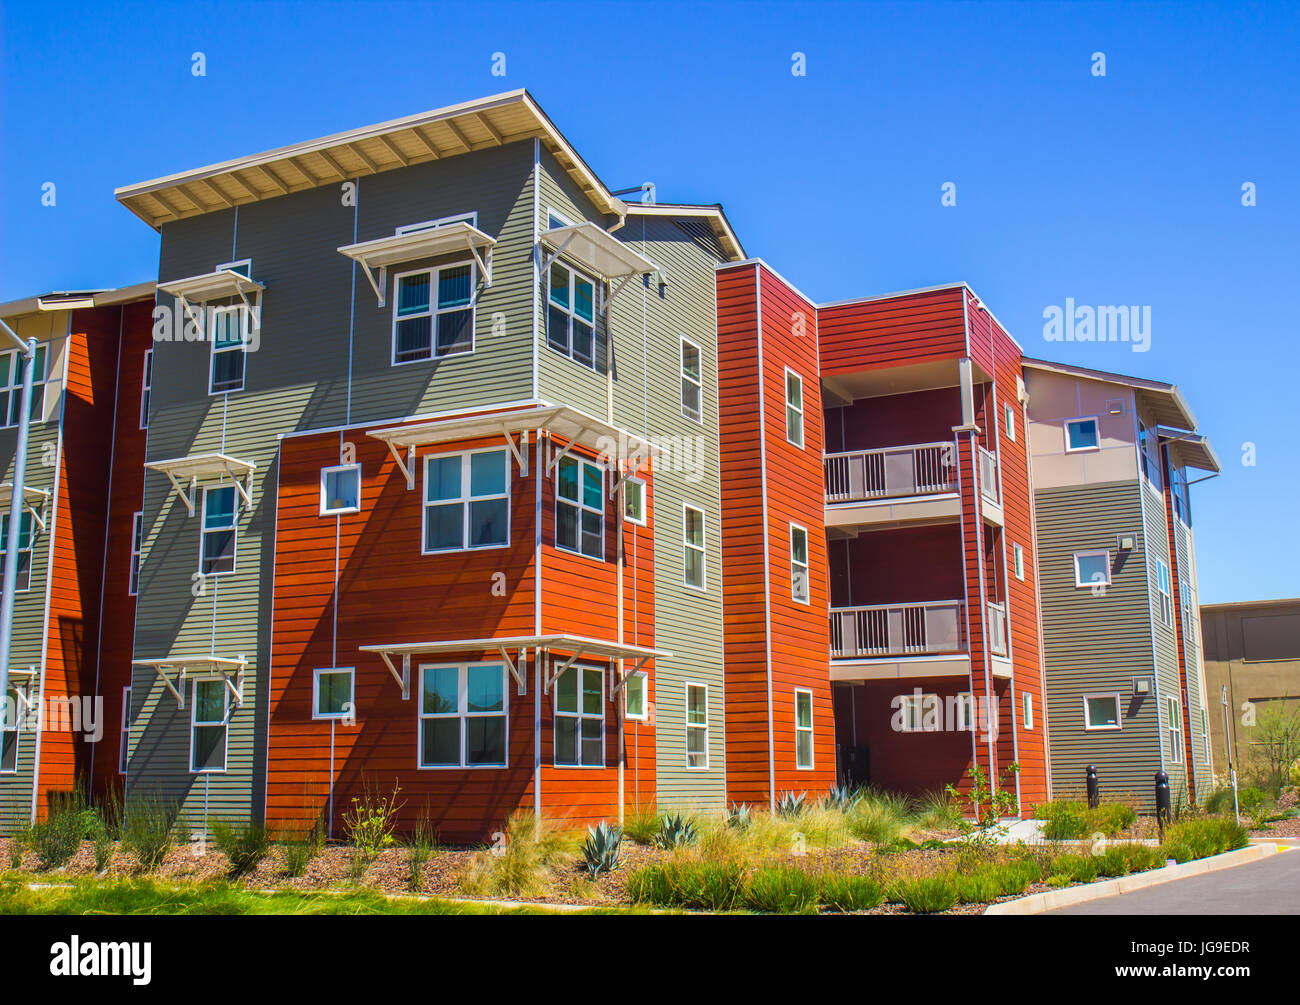 Multi Colored Three Story Living Quarters - Stock Image